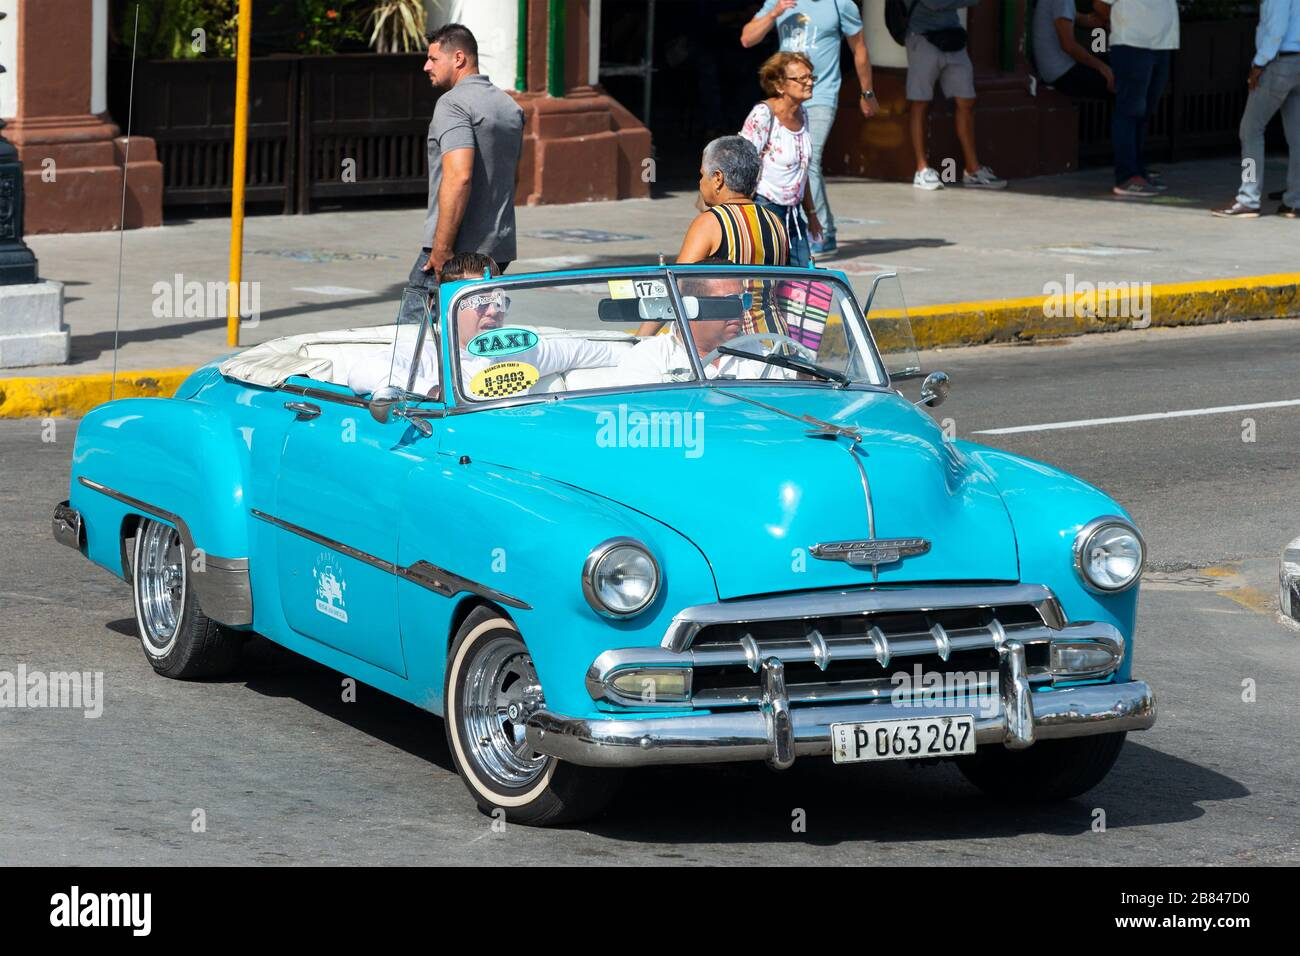 Chevrolet Classic Car In Light Blue Cyan Color In Havana Cuba Downtown Offering Taxi And Tour Services Chrome Plated Details Vehicle In La Habana Stock Photo Alamy